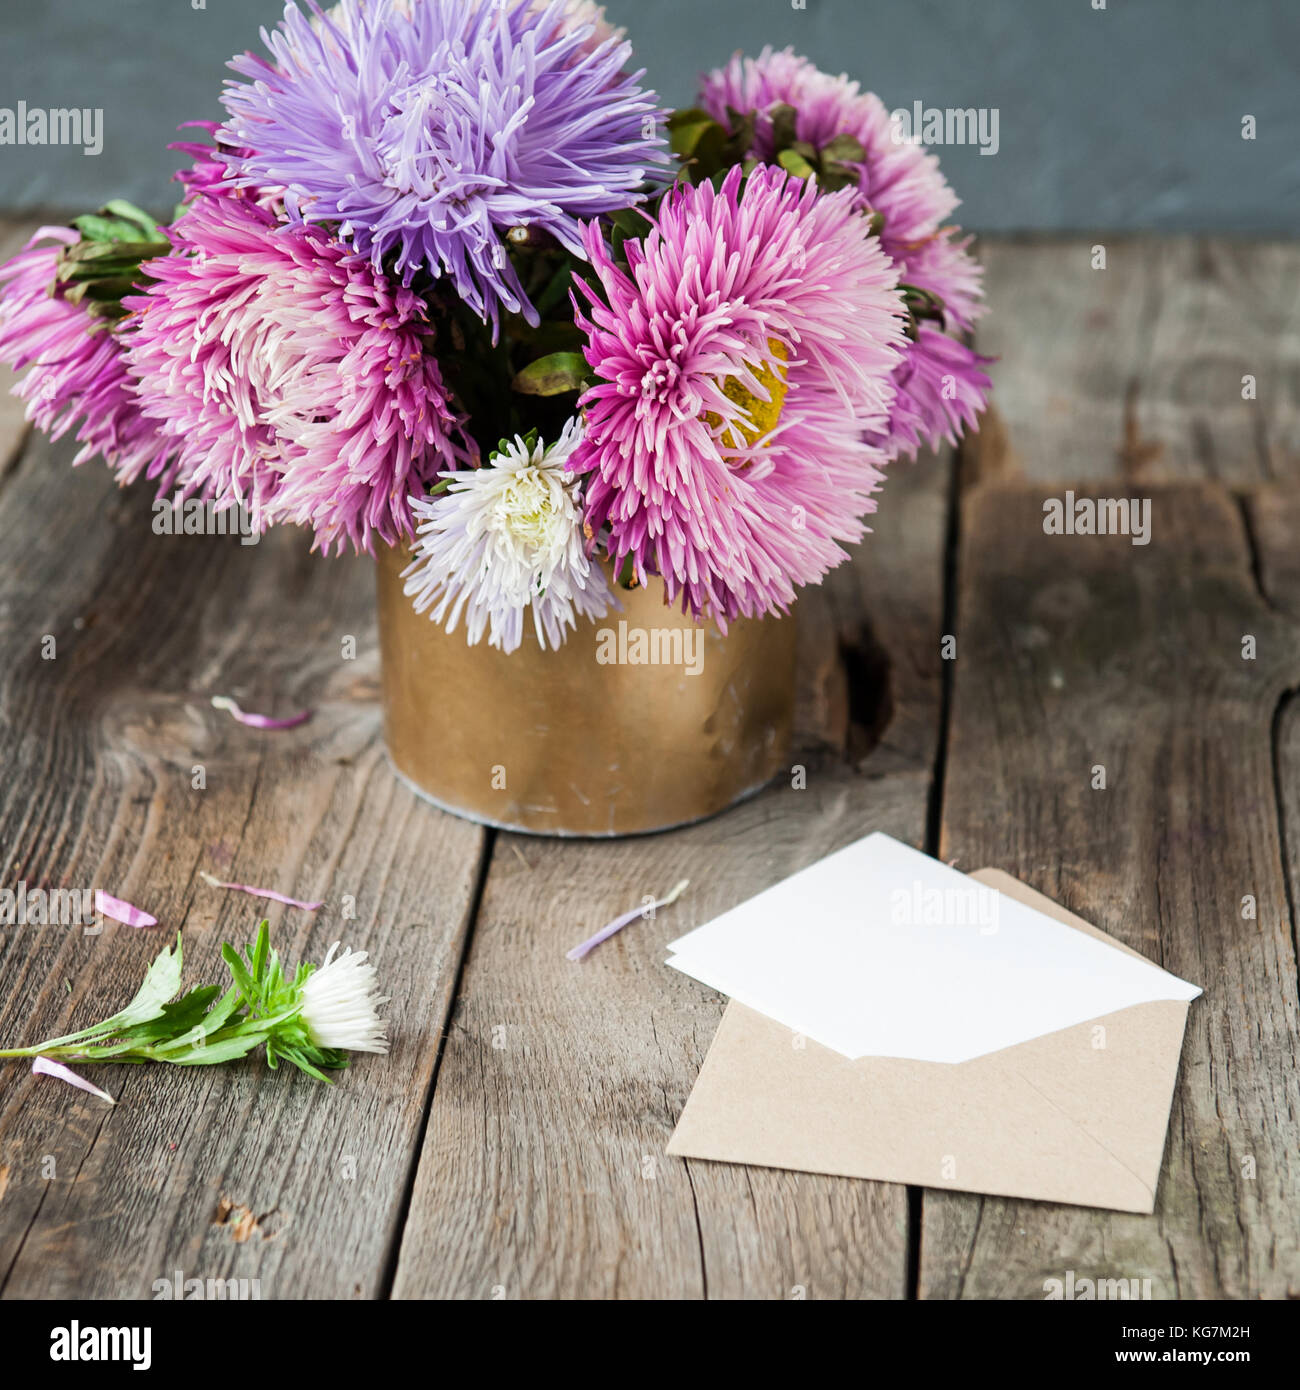 Multicolor aster flowers bouquet blank white greeting card and multicolor aster flowers bouquet blank white greeting card and craft paper envelope on rustic wooden table and dark grey background postcard mock u izmirmasajfo